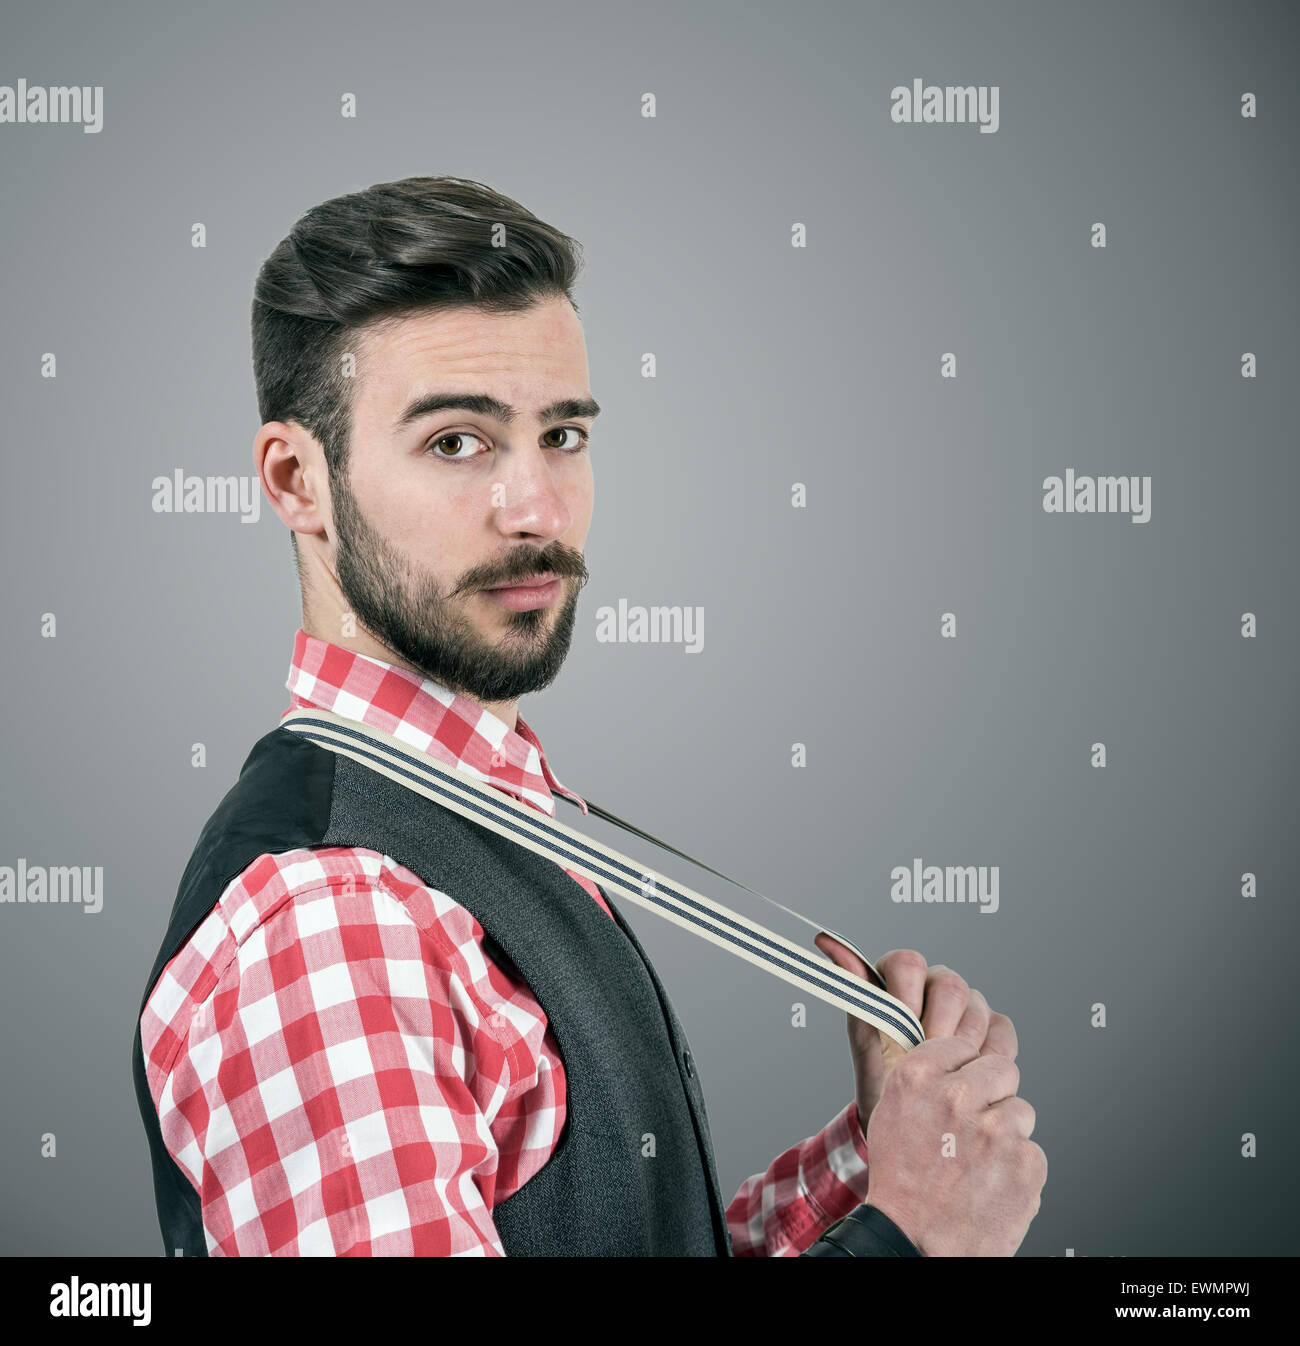 Desaturated portrait of young bearded hipster pulling his suspenders looking at camera over dark grey studio background - Stock Image